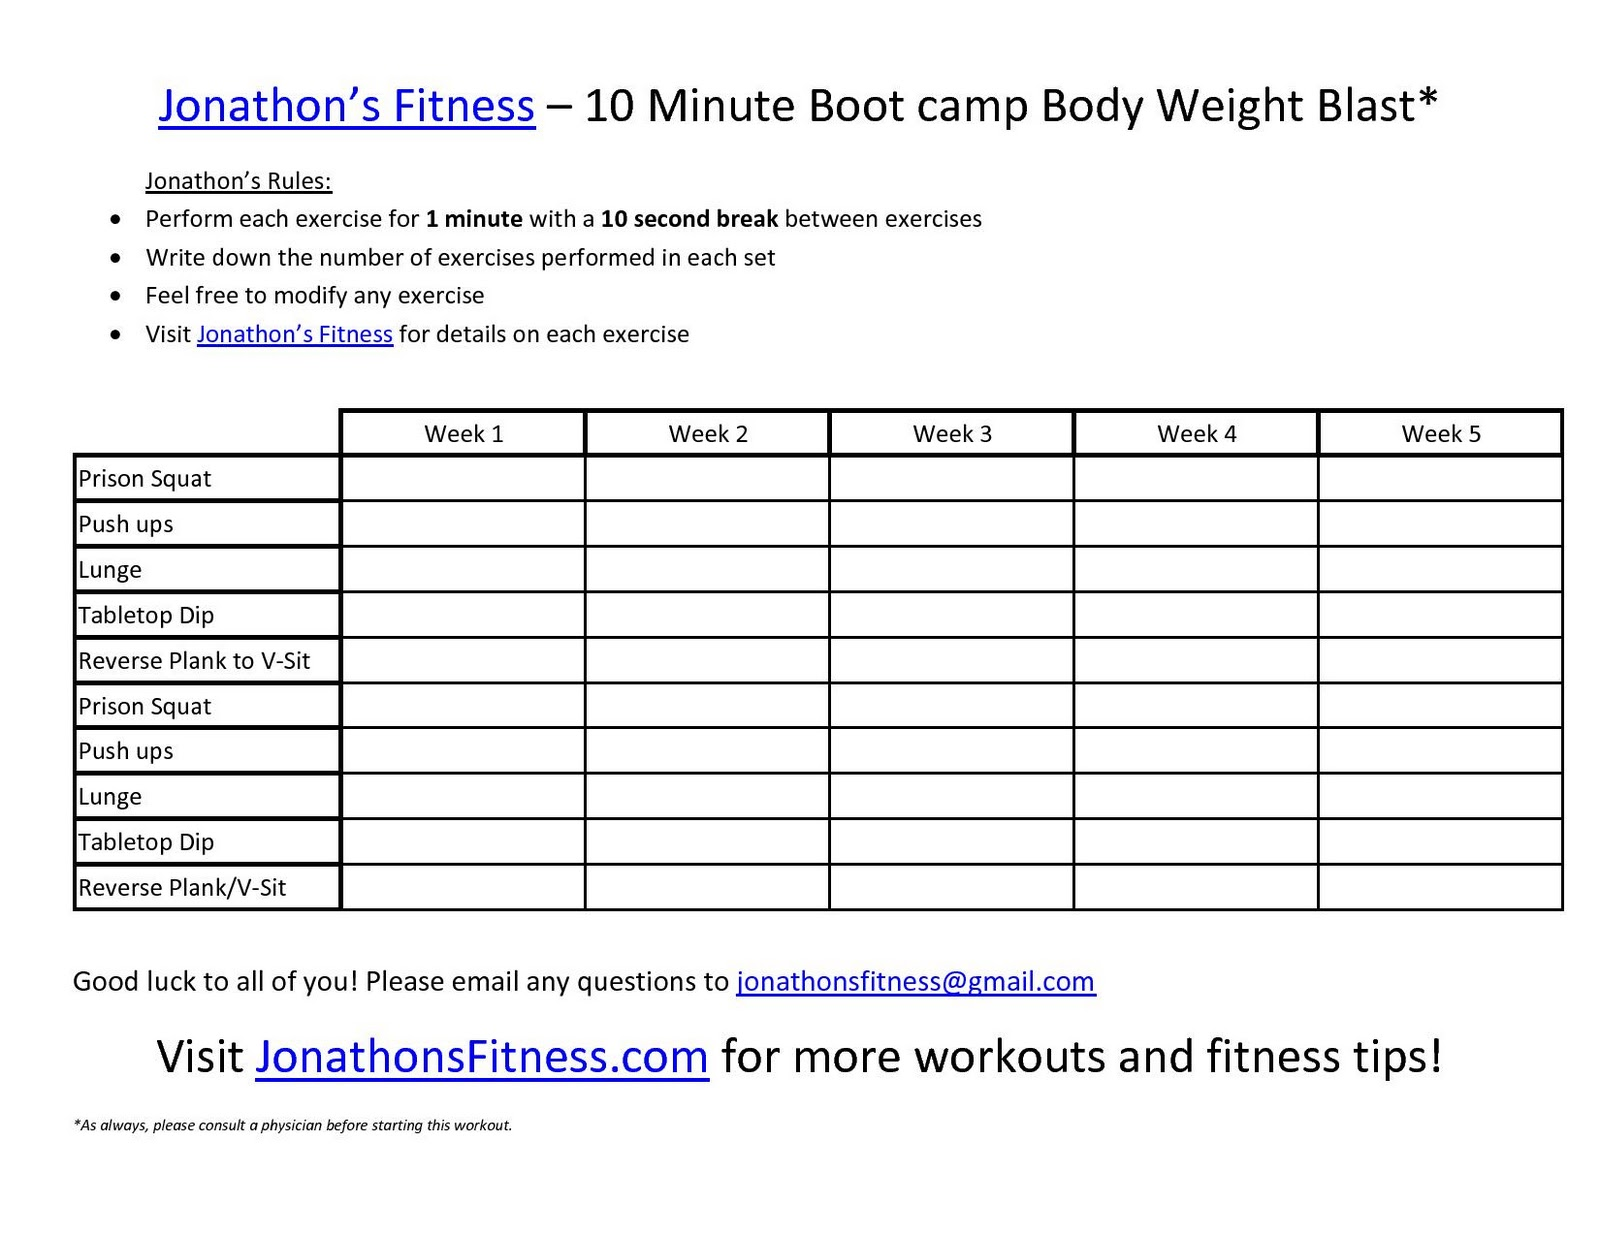 Workout Routines For Weight Loss And Toning Women: Workout